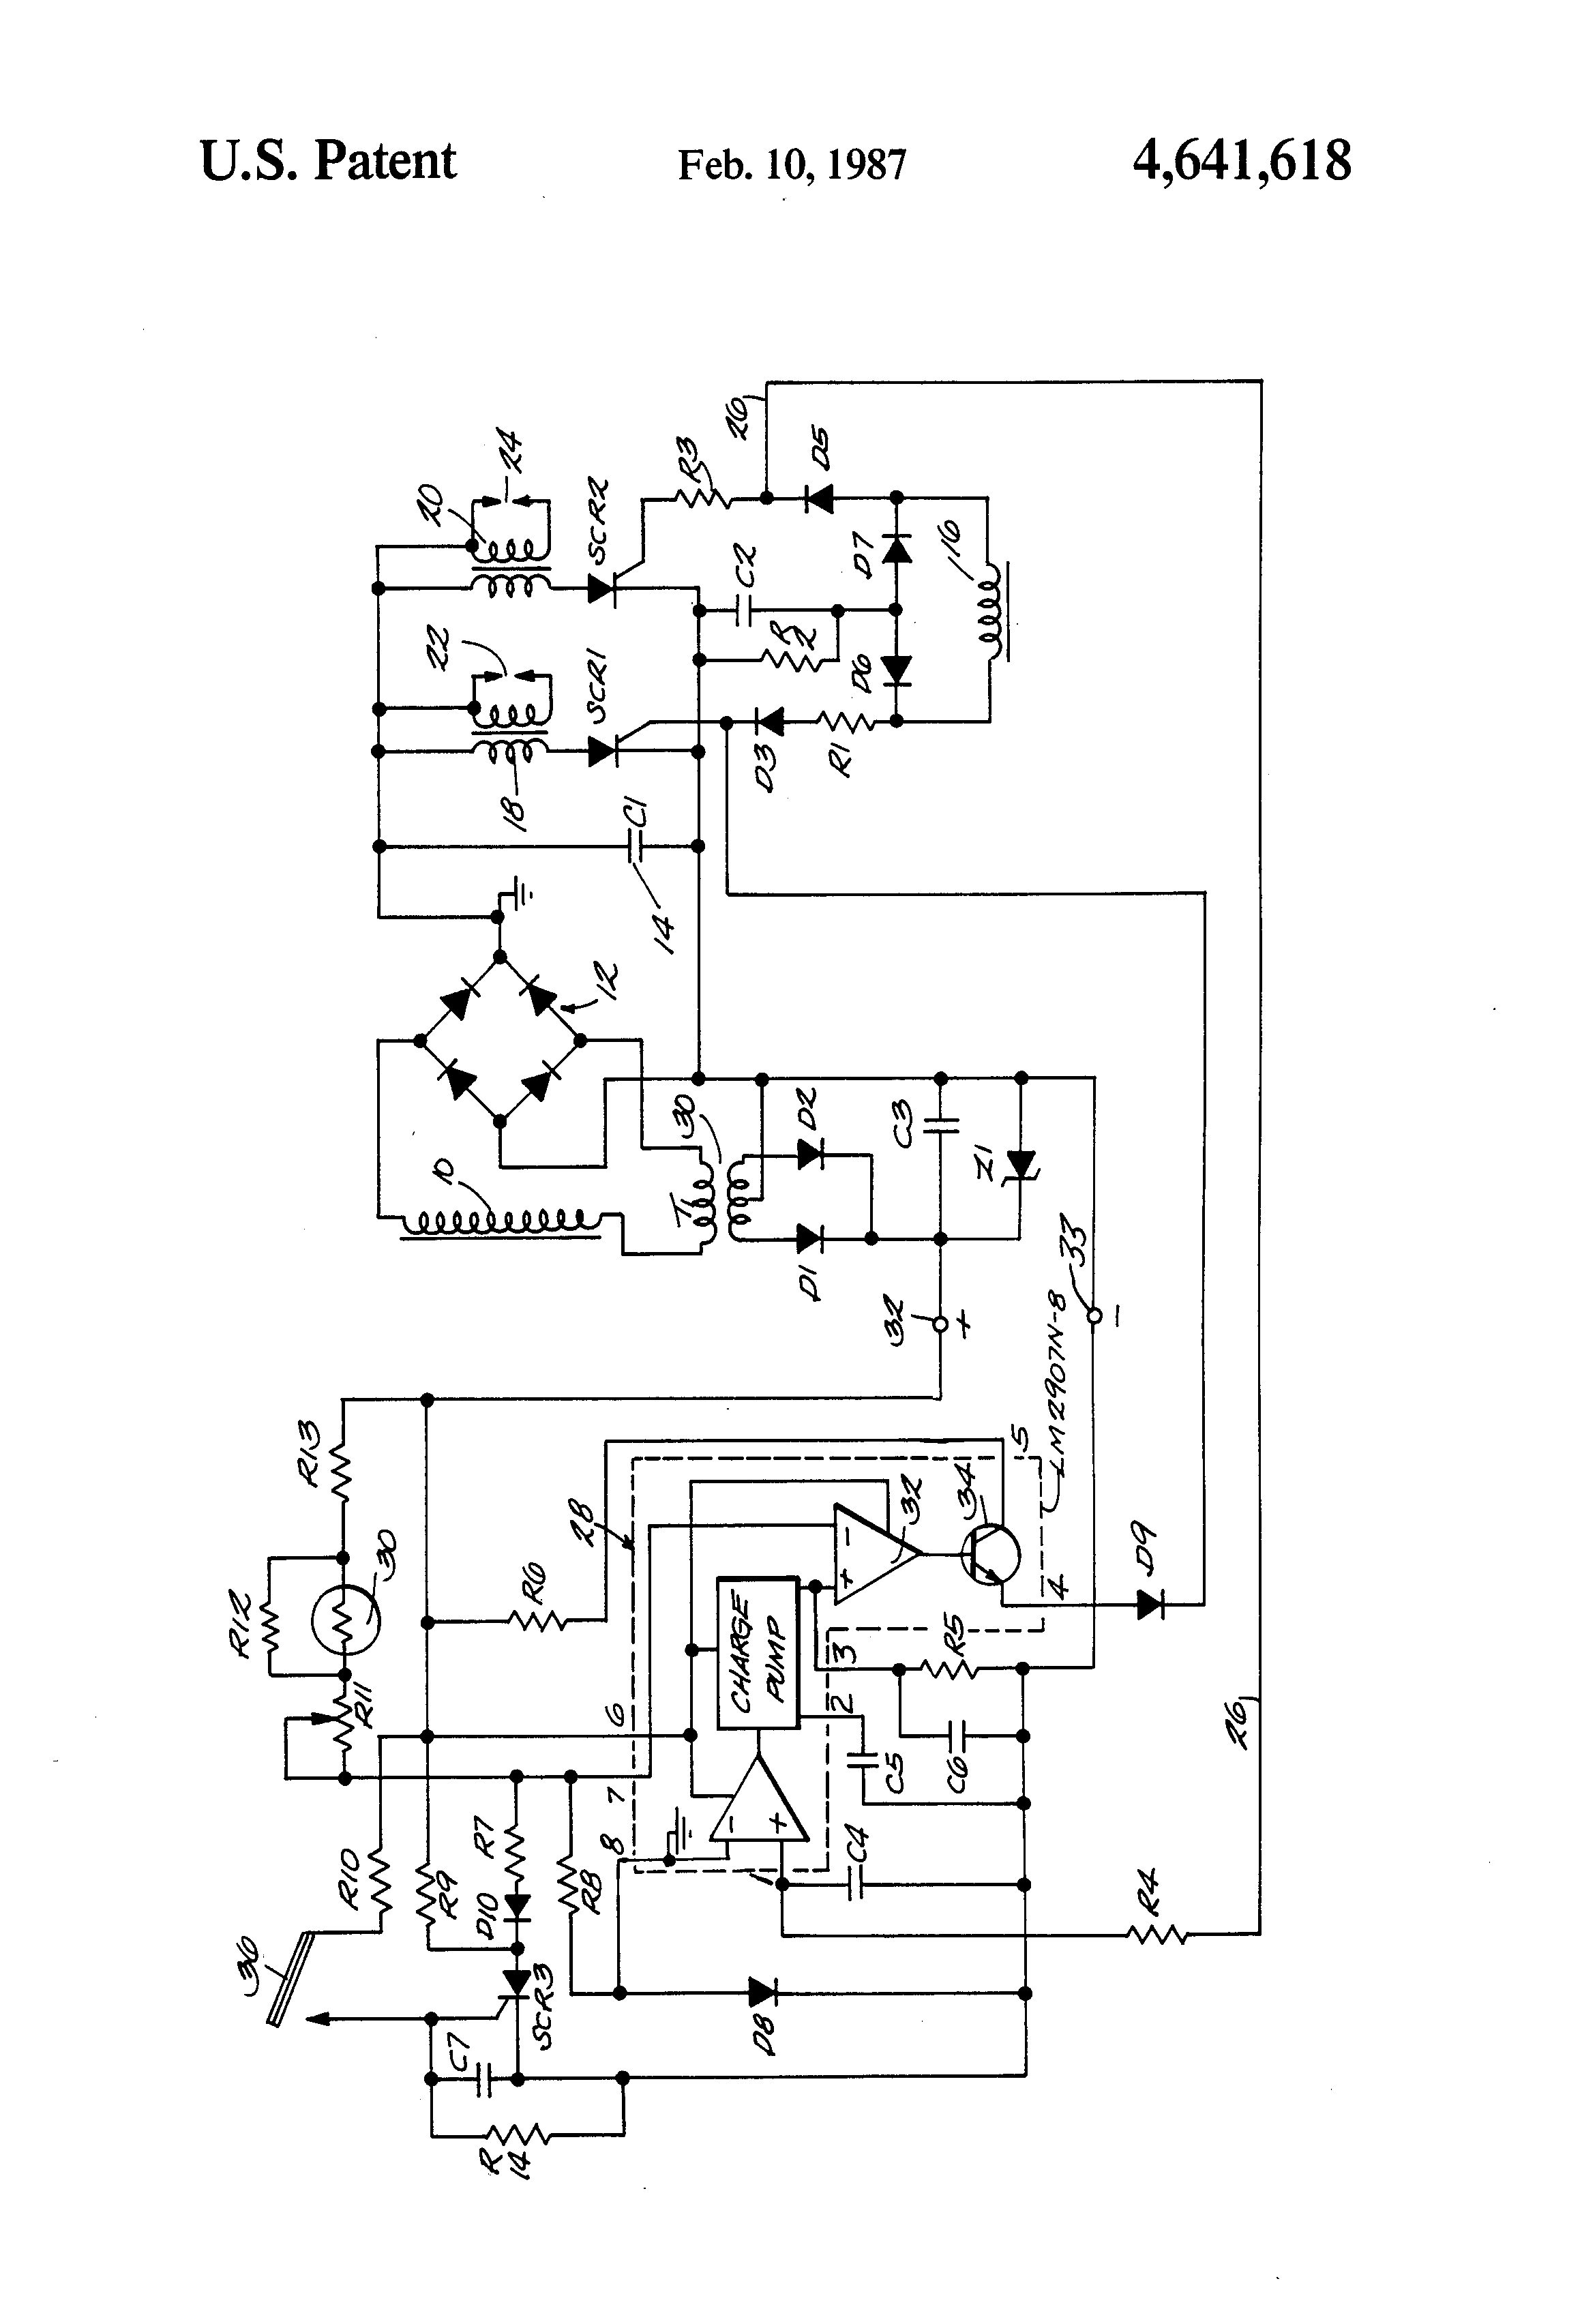 Shindengen Cdi Wiring Diagram 29 Images Td Cortina Us4641618 1 Patent Overspeed Overheat Circuit With A Latch For Ti 15c